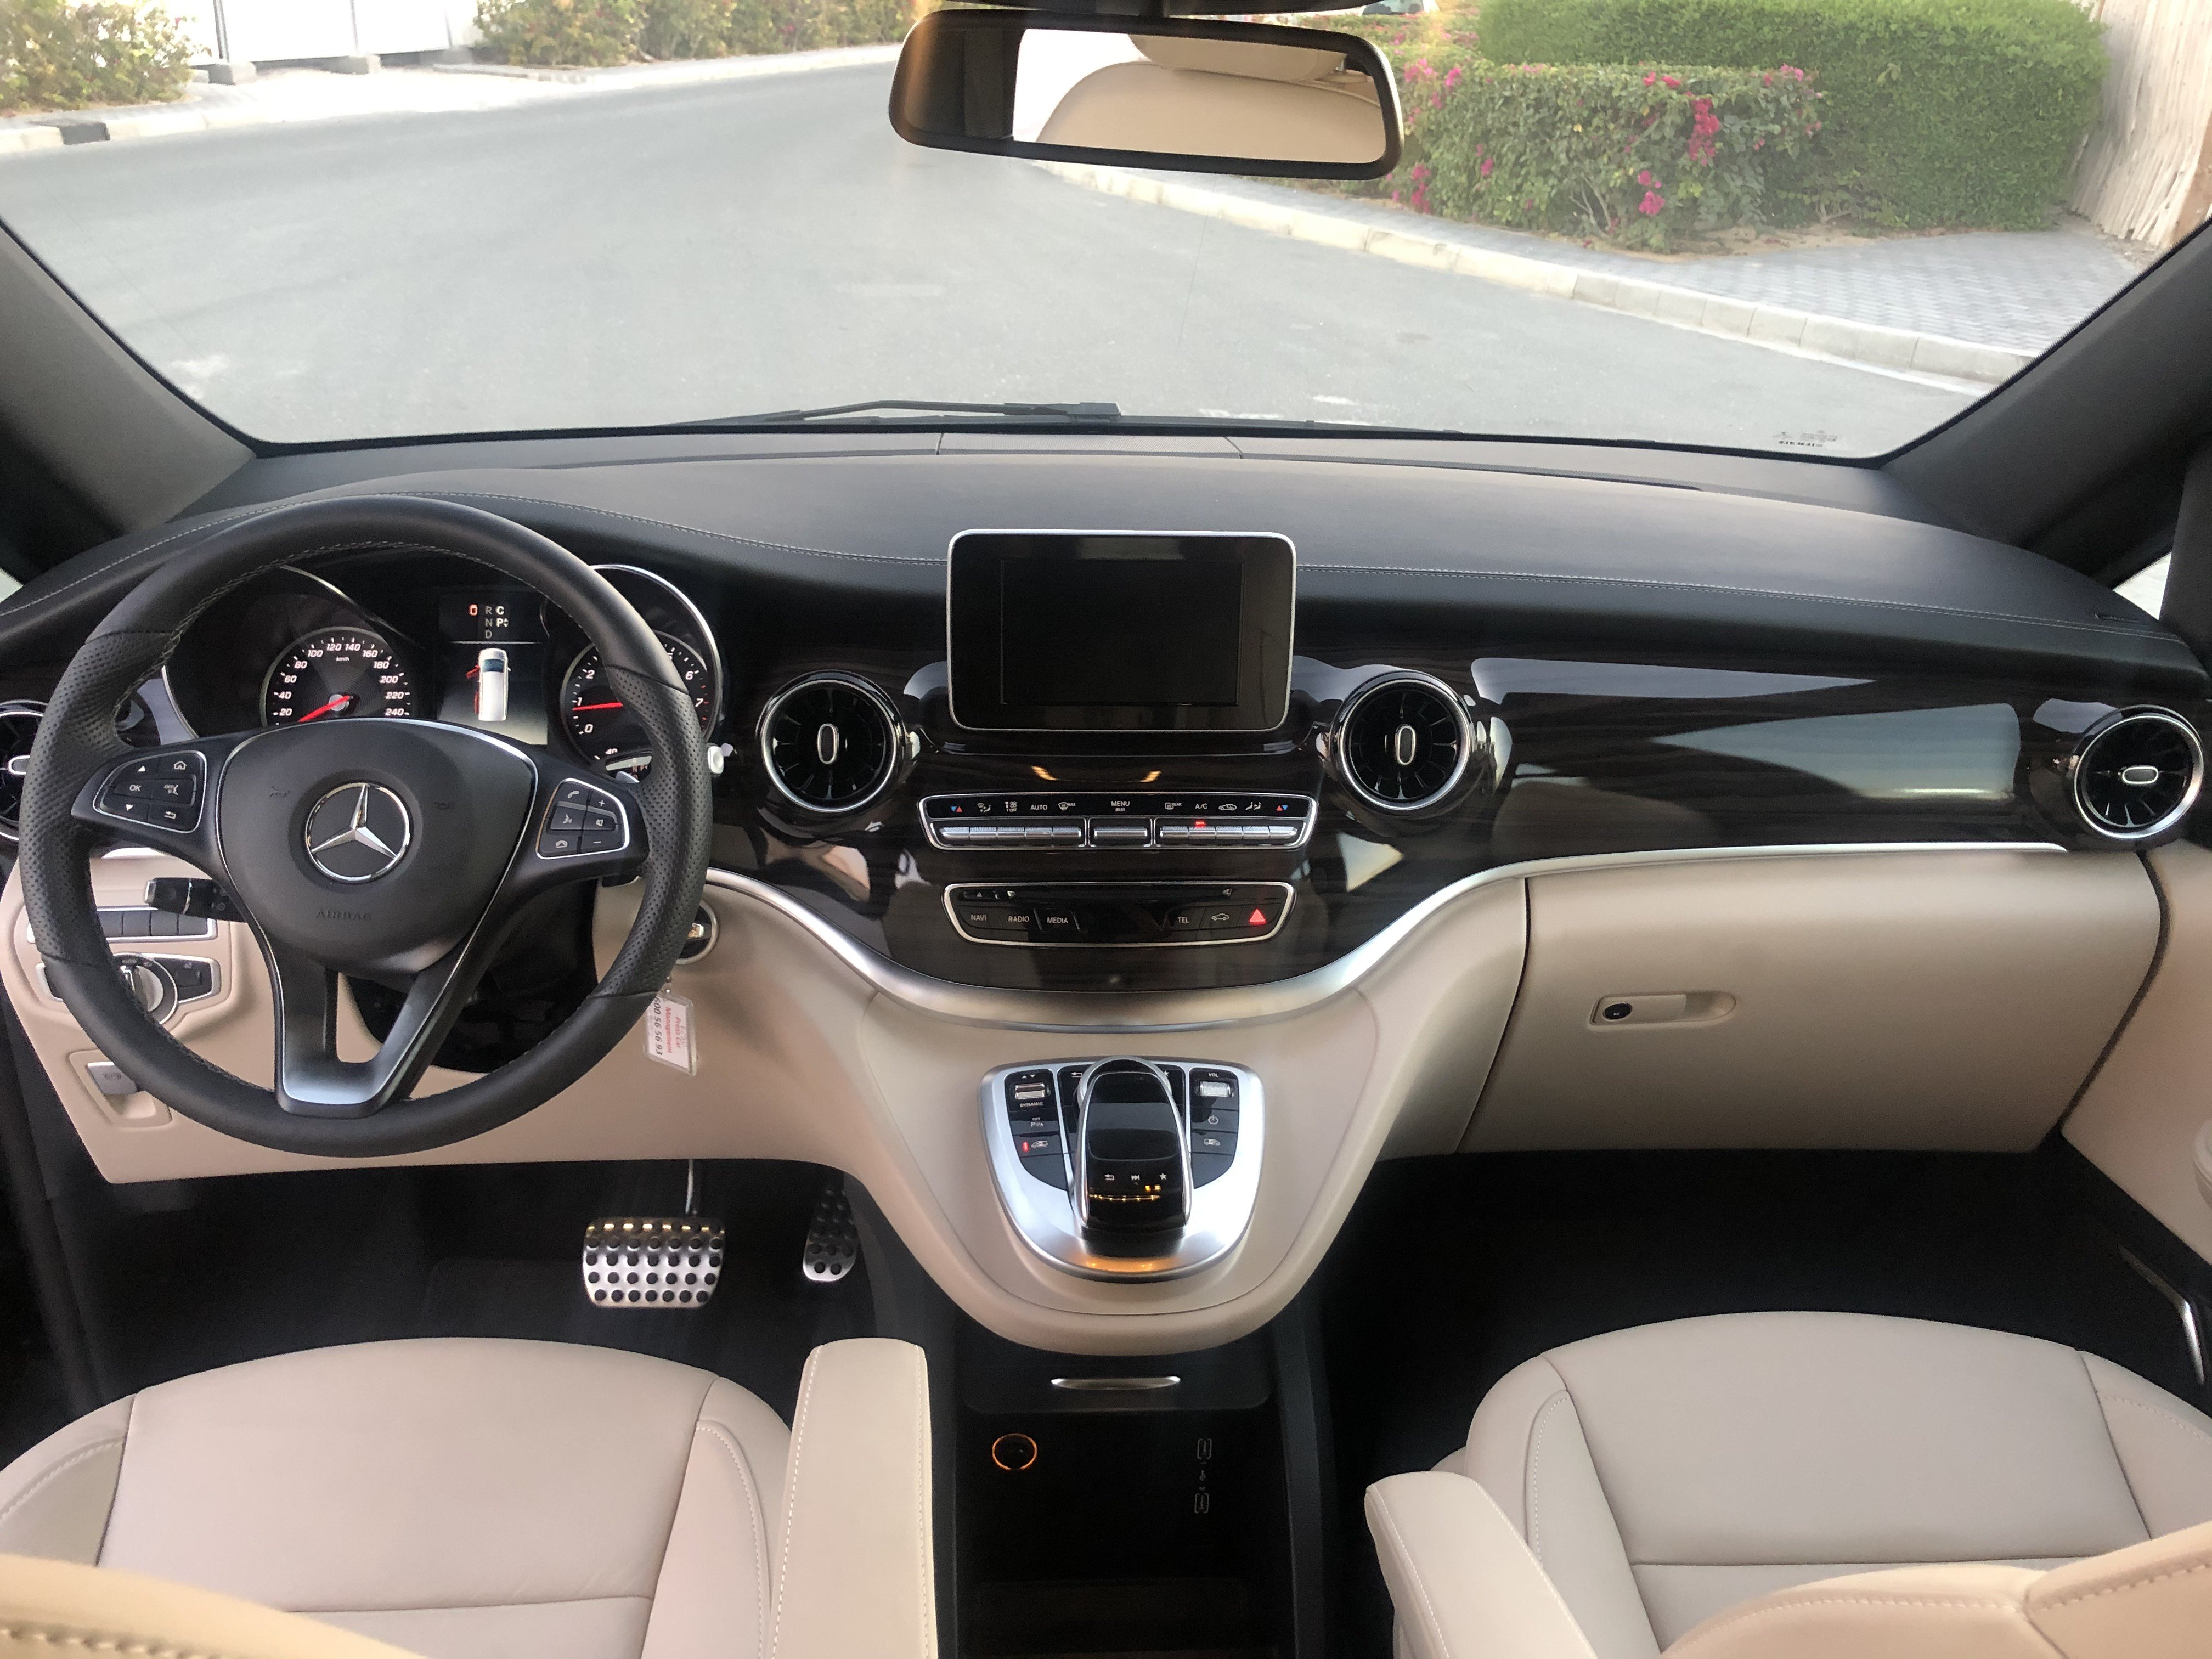 Mercedes Benz Avantgarde Interior Body